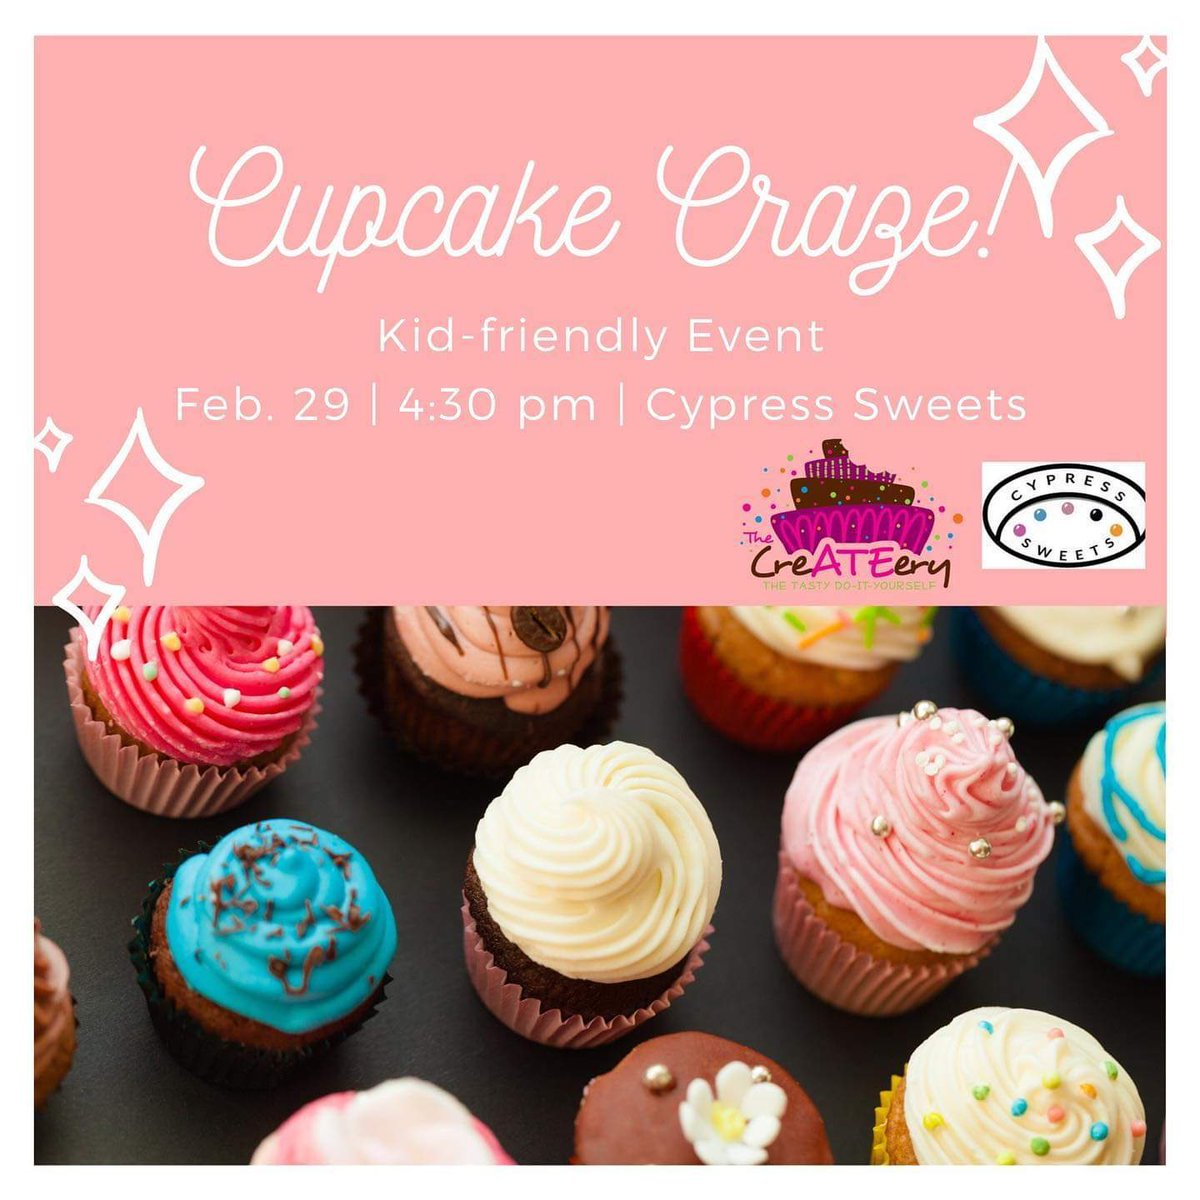 Keep your sweet tooth satisfied one #CySweets event at a time!   NOW booking seats for our Feb#cupcakedecorating class taught by #TheCreATEery. #cupcakecraze  #thetastydiy #thingstodoinhouston #cupcakes #houstonmoms #houstonkidsparty #katymoms #familyfun #cypresspartyplacepic.twitter.com/DPzbsAzv54